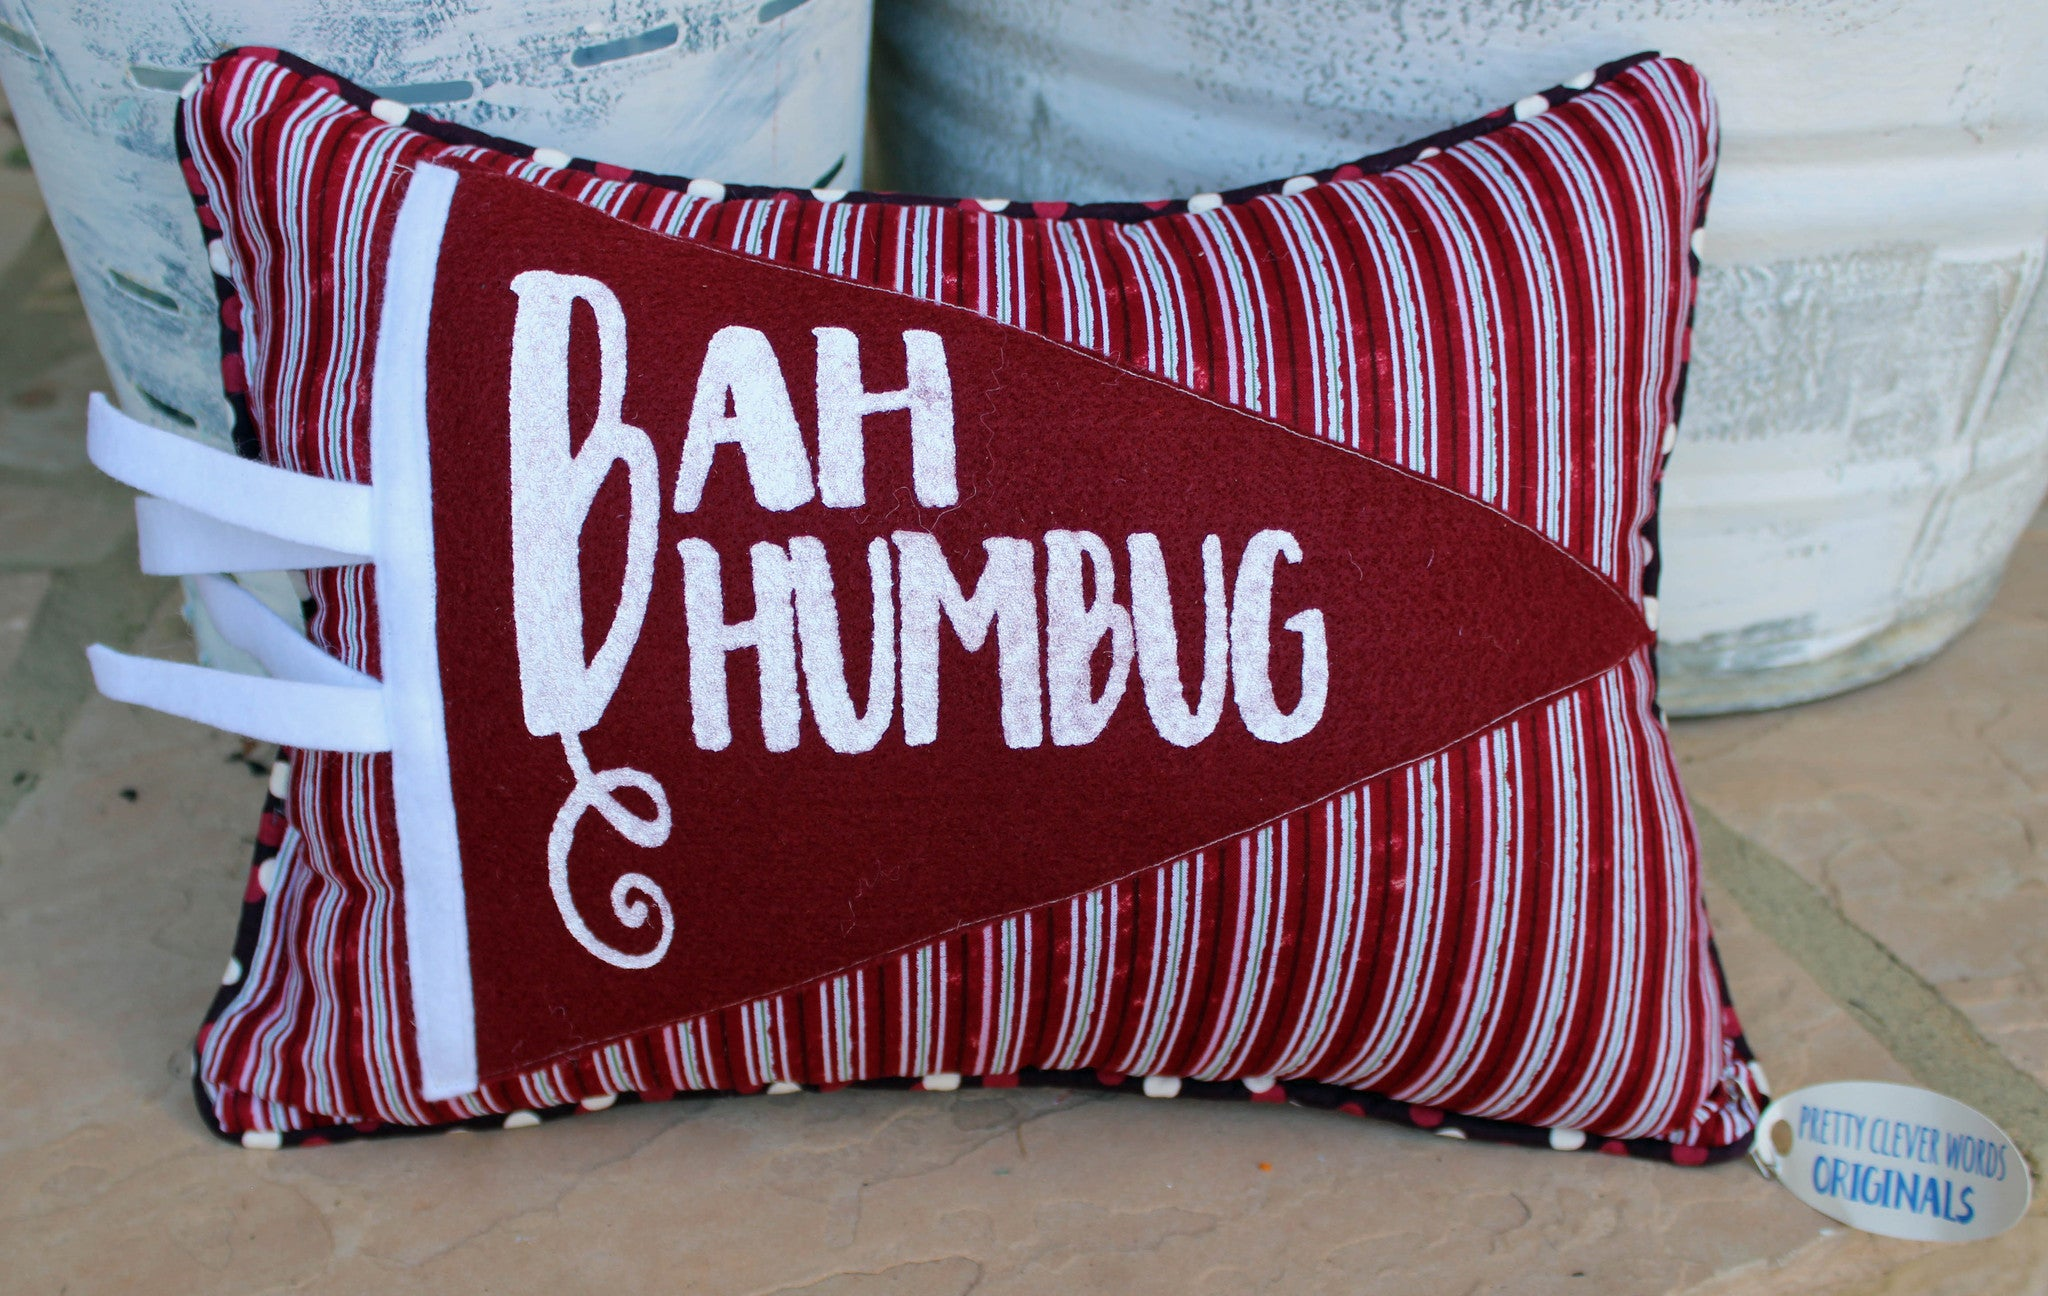 vintage style pennant pillow - Bah Humbug